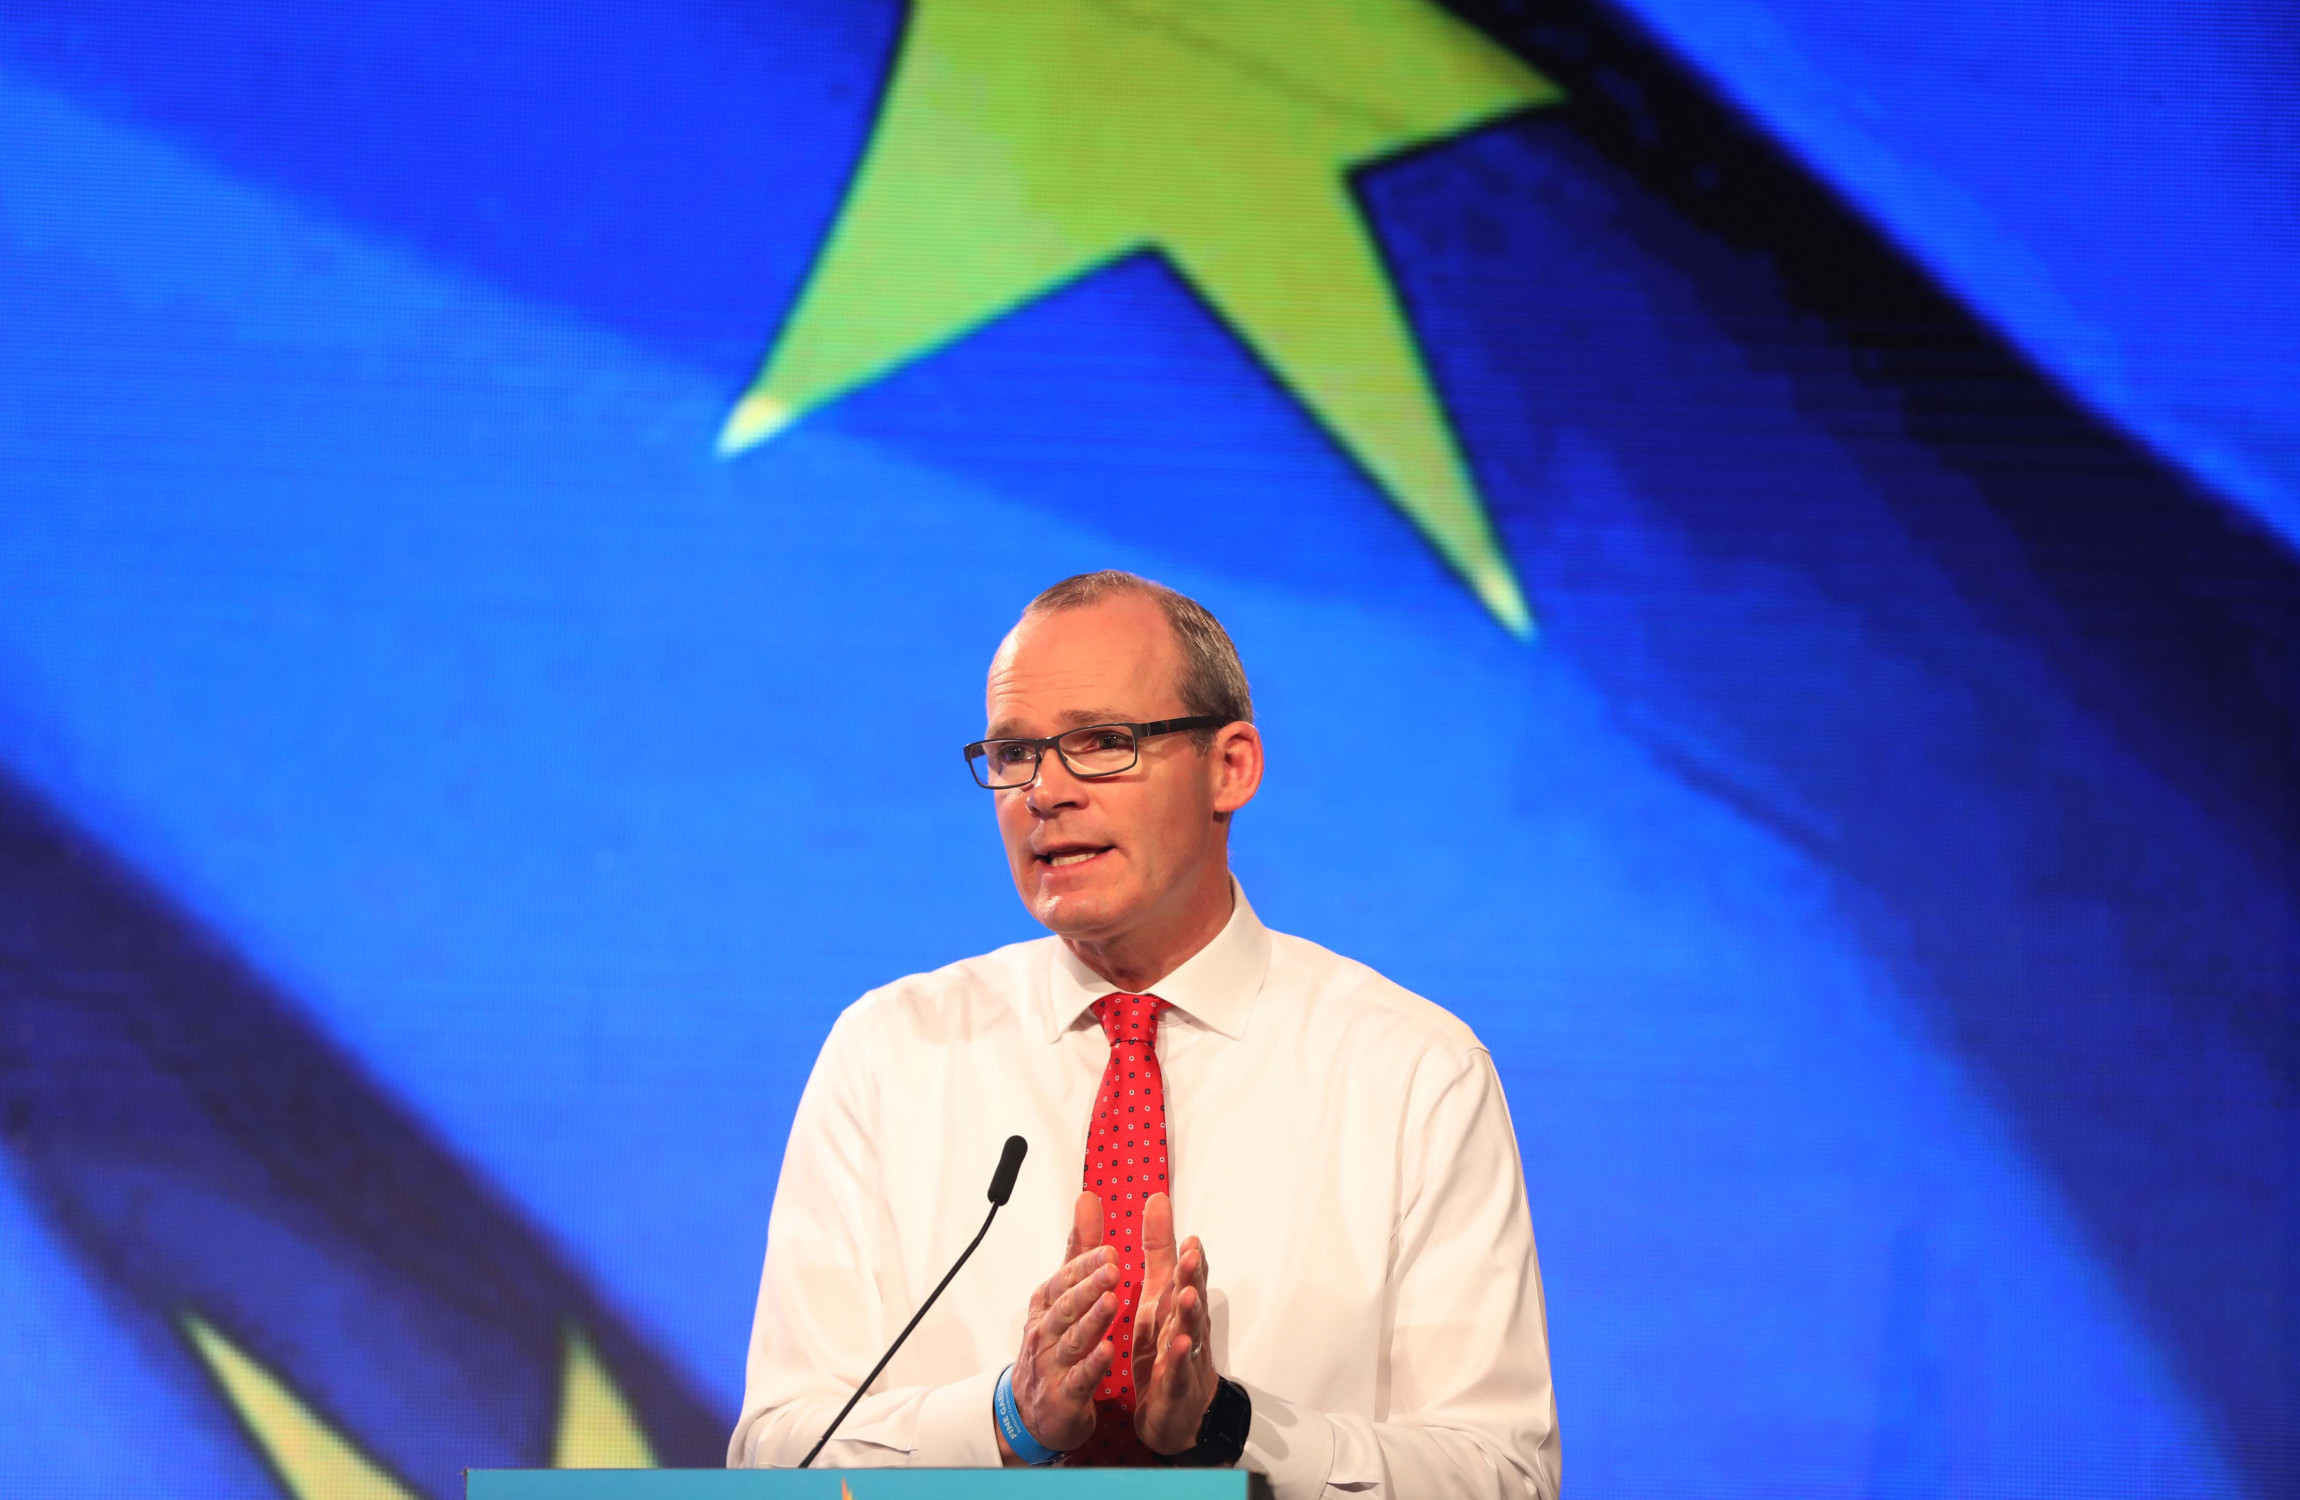 Simon Coveney keen to repair relationship between Irish government and DUP